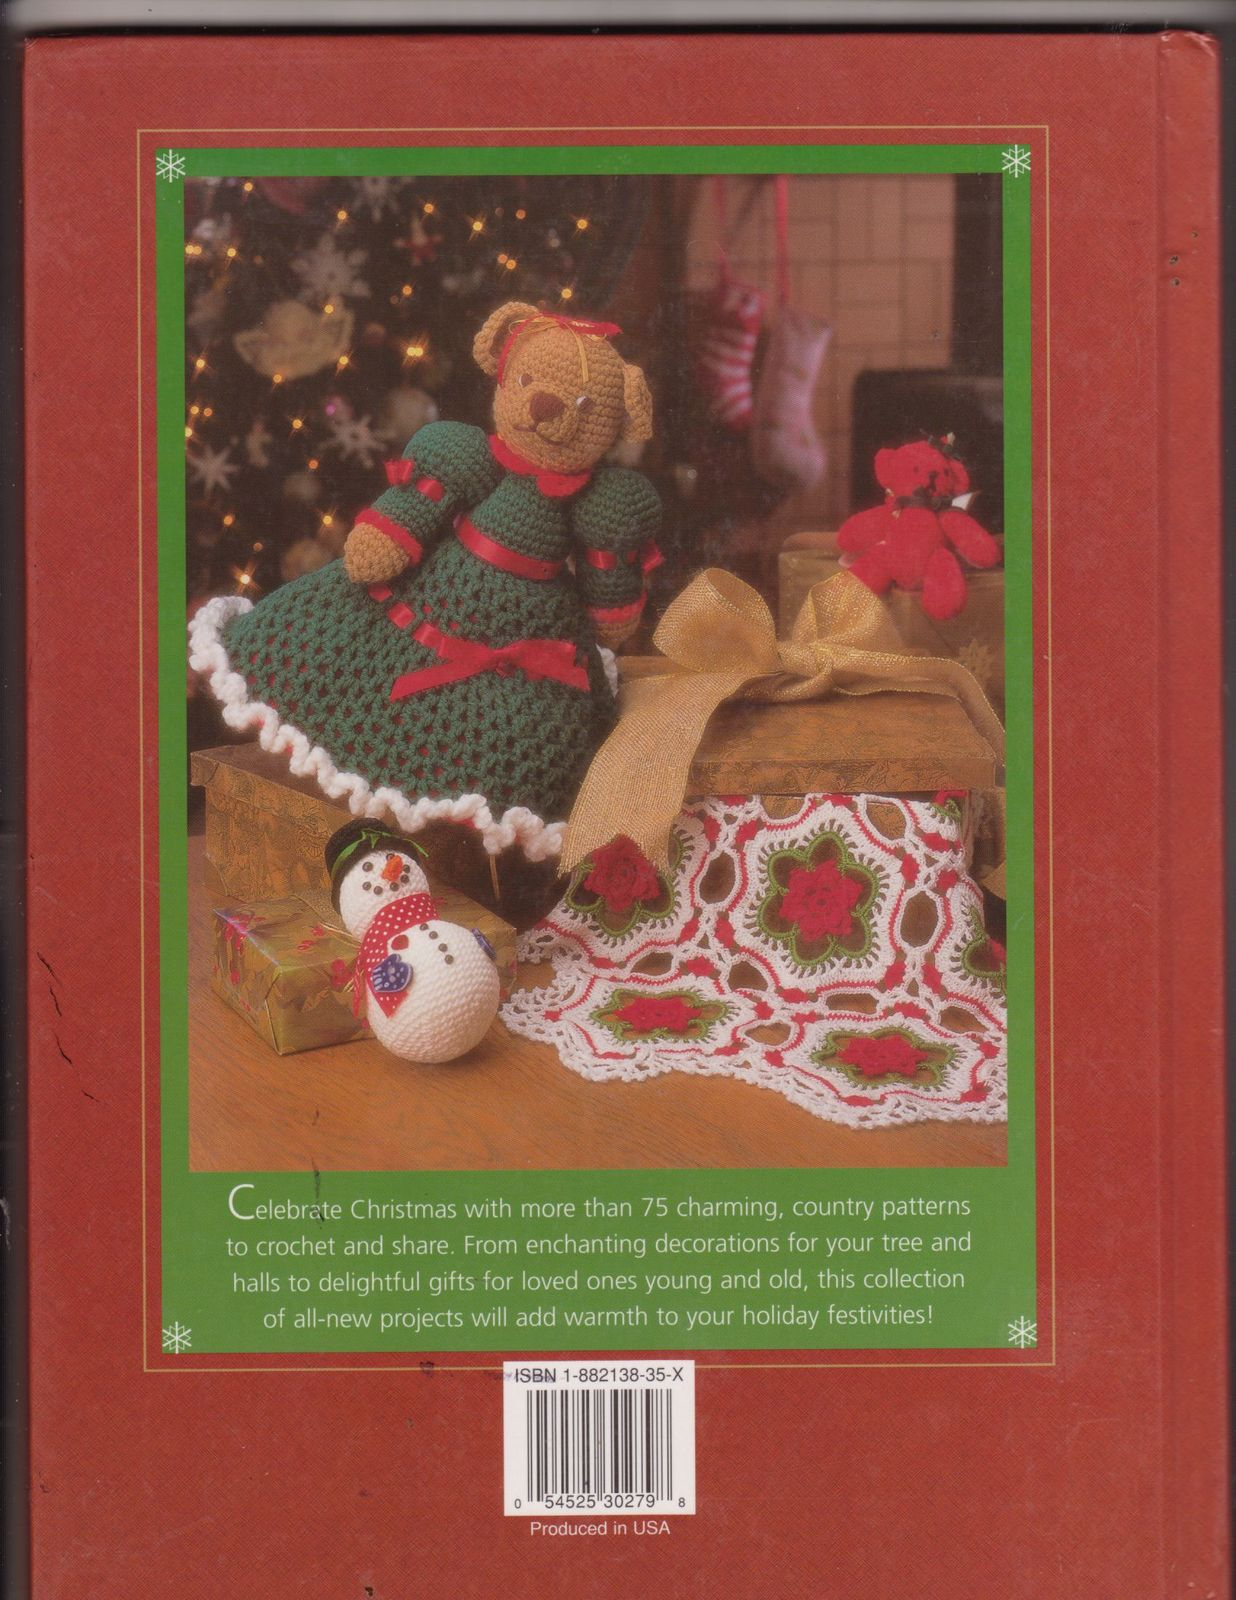 Country Christmas Crochet Hb Book Afghans Gifts Ornaments: country christmas gifts to make